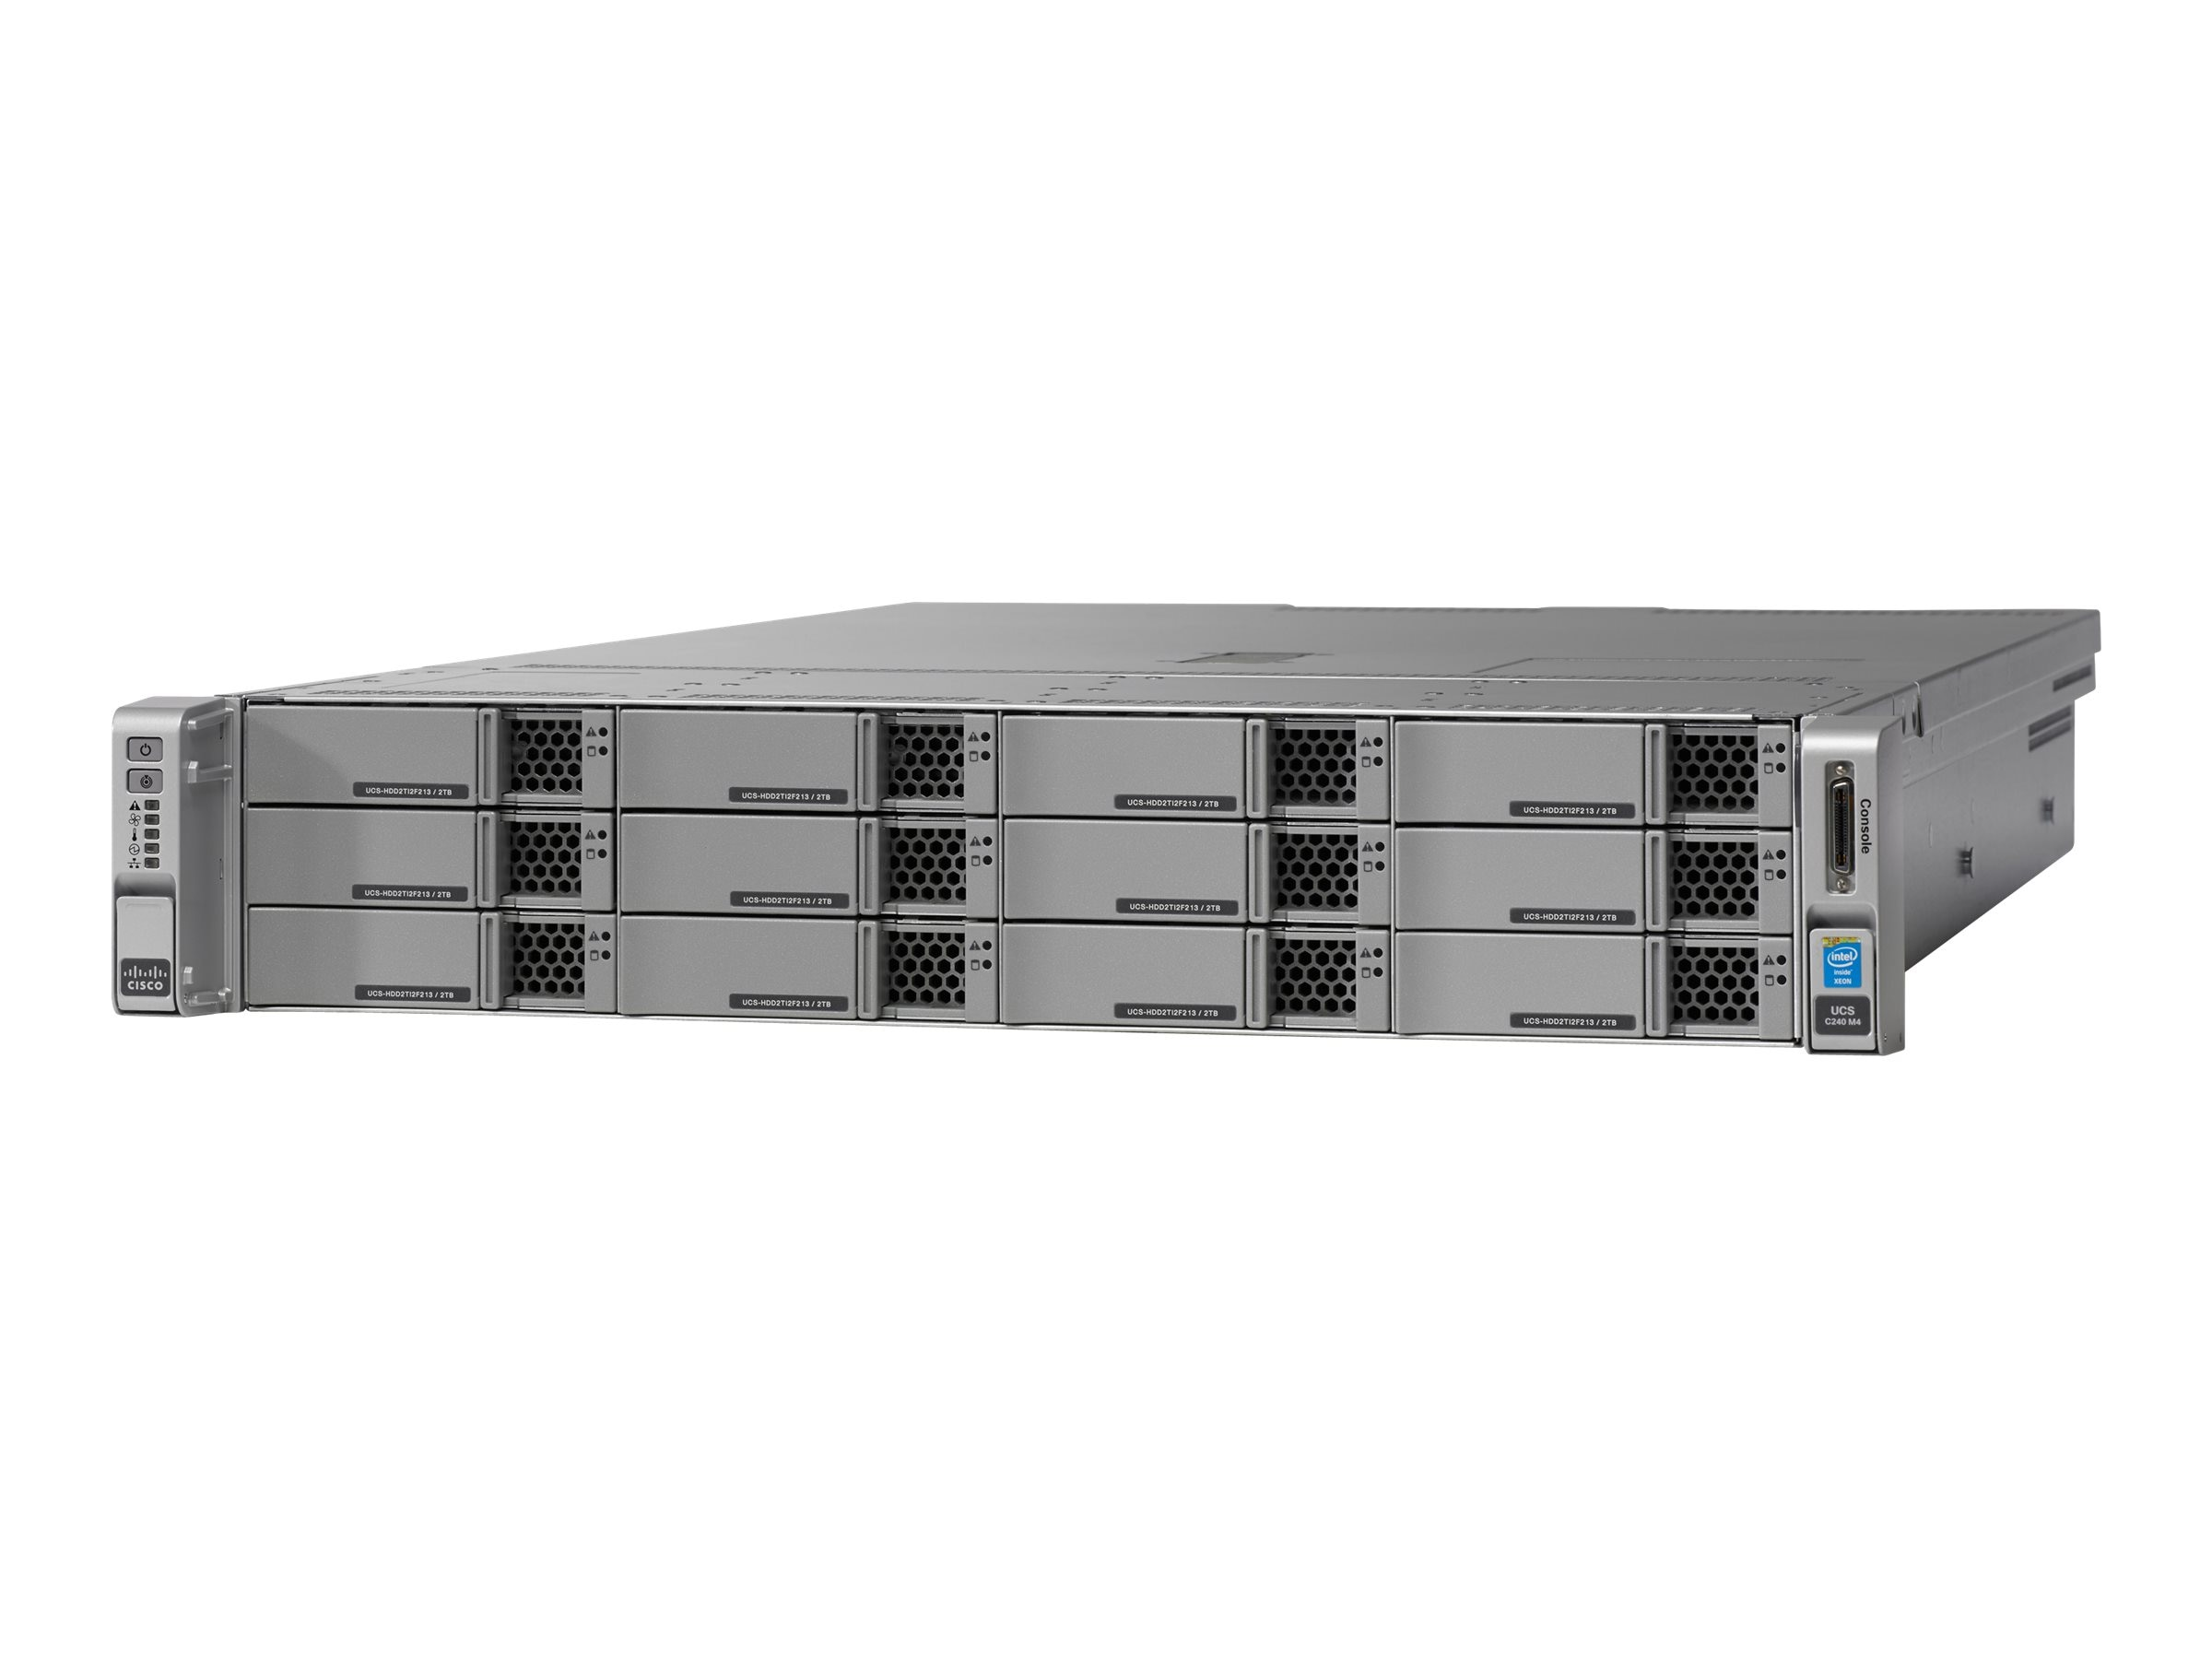 Cisco UCS-SP-C240M4L-S2 Image 2